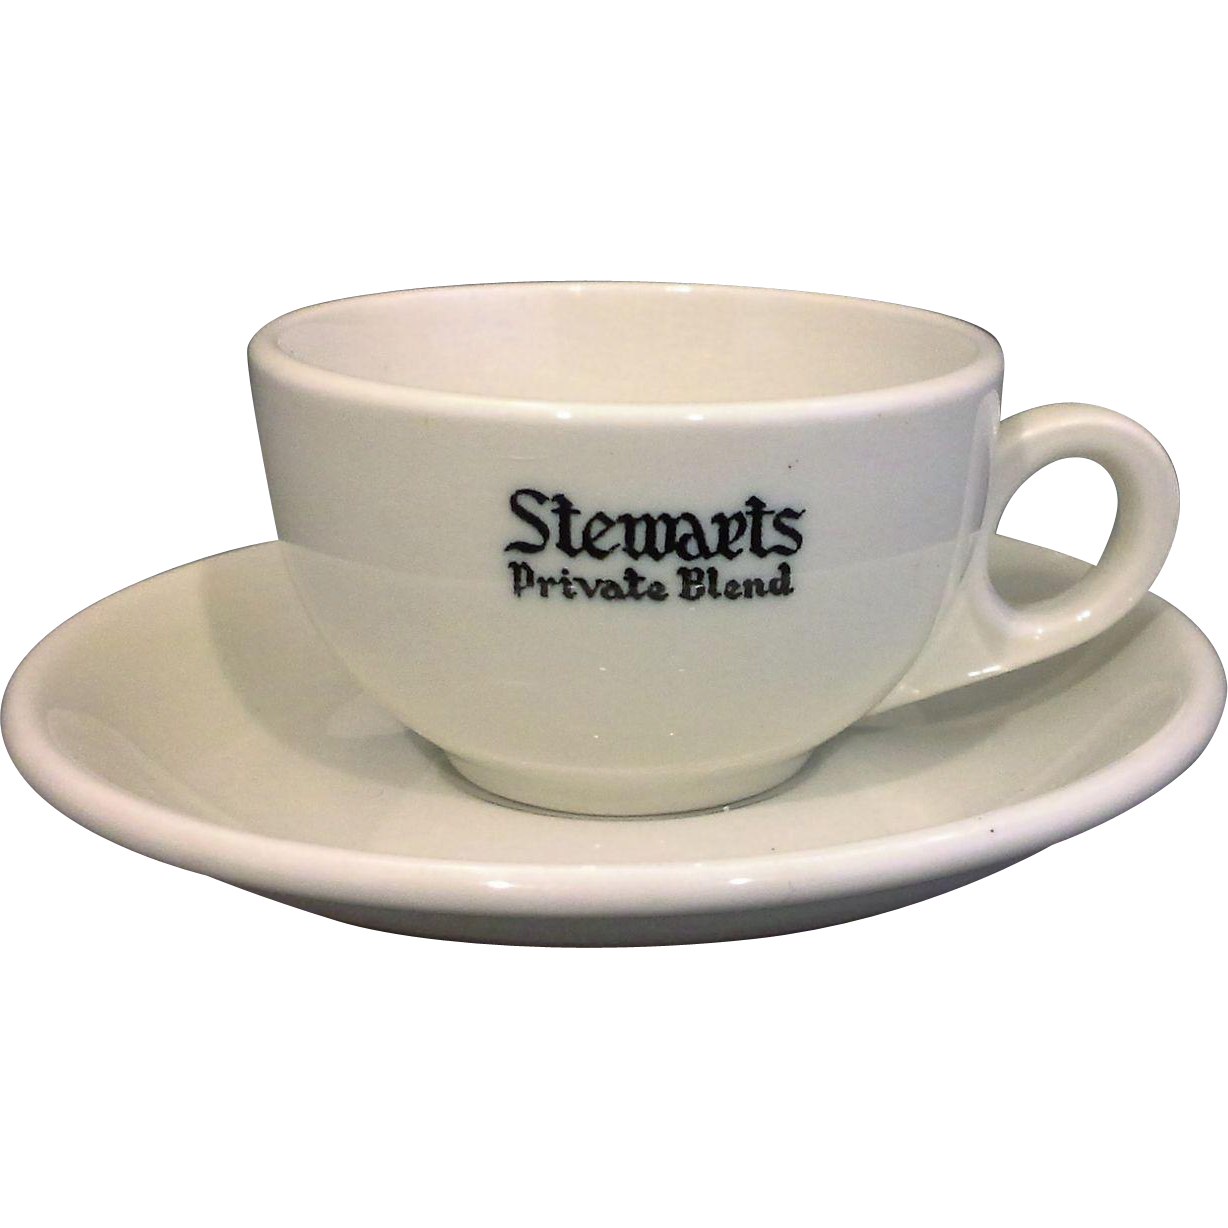 Stewarts Private Blend McNicol China Restaurant Ware Demitasse Cup Saucer Set